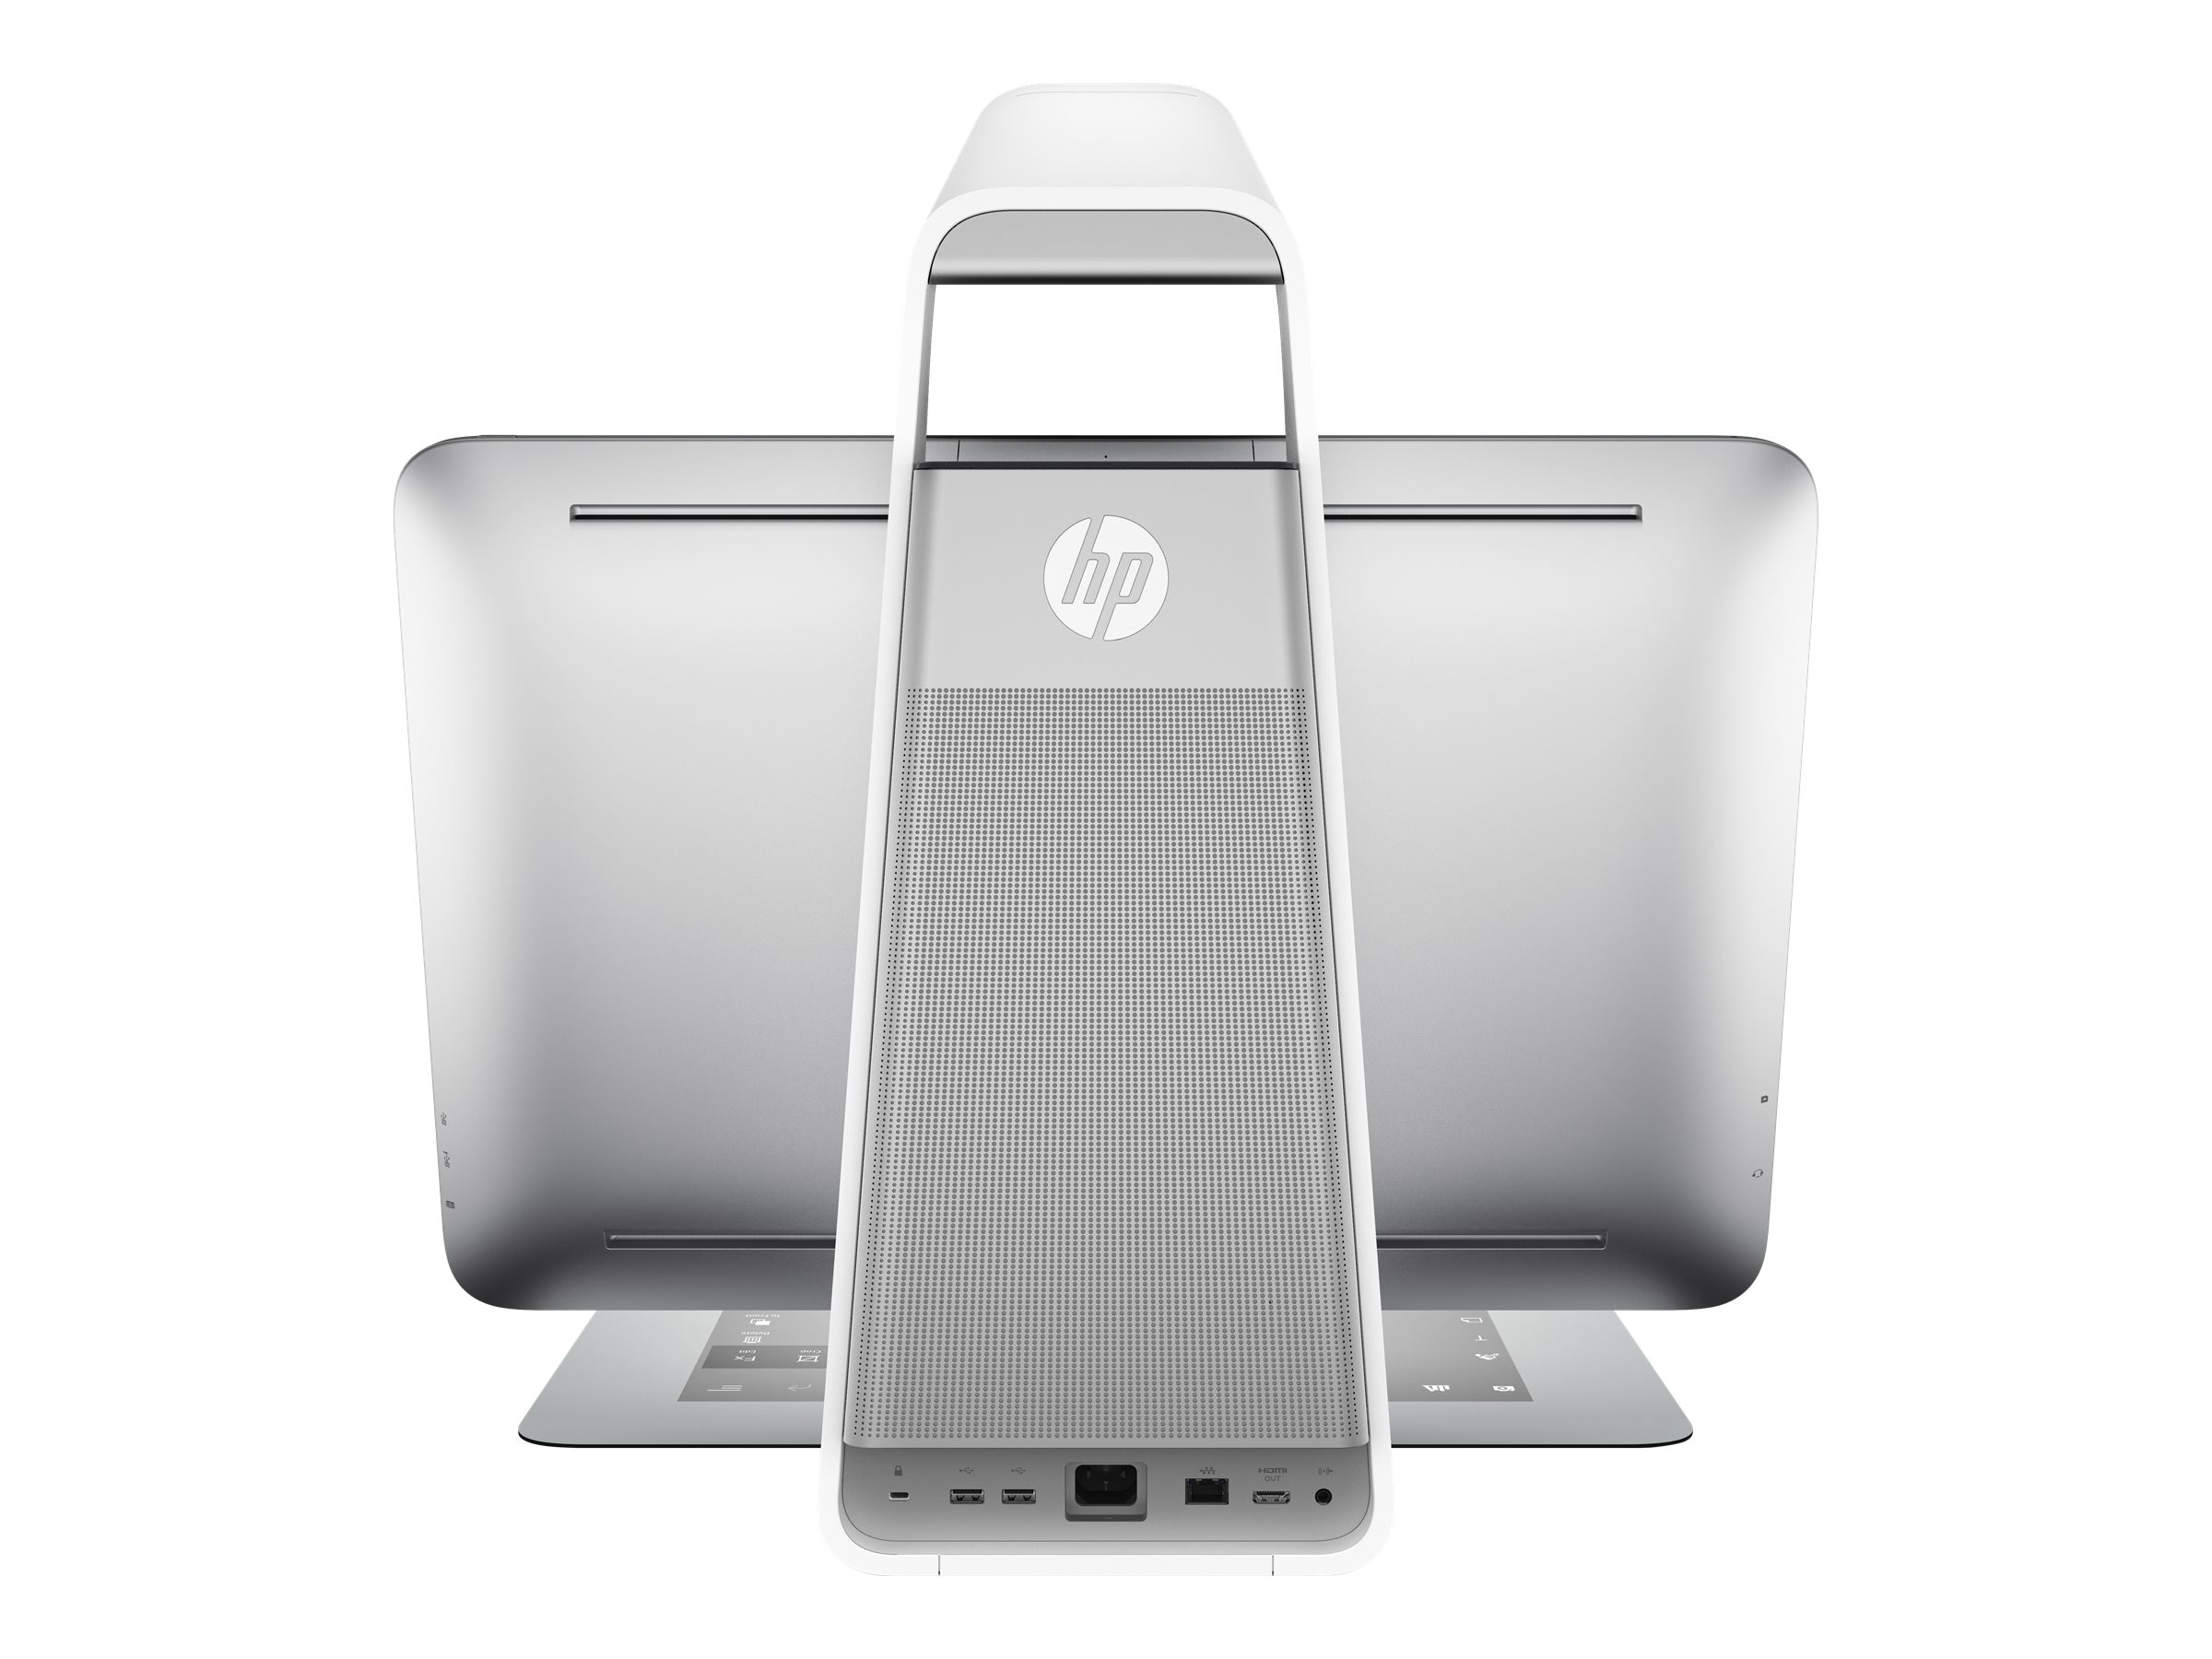 HP Sprout Pro AIO Core i7-6700 3.4GHz 8GB 1TB GT945A GbE 23 FHD MT W10P64, H0GM0AA#ABA